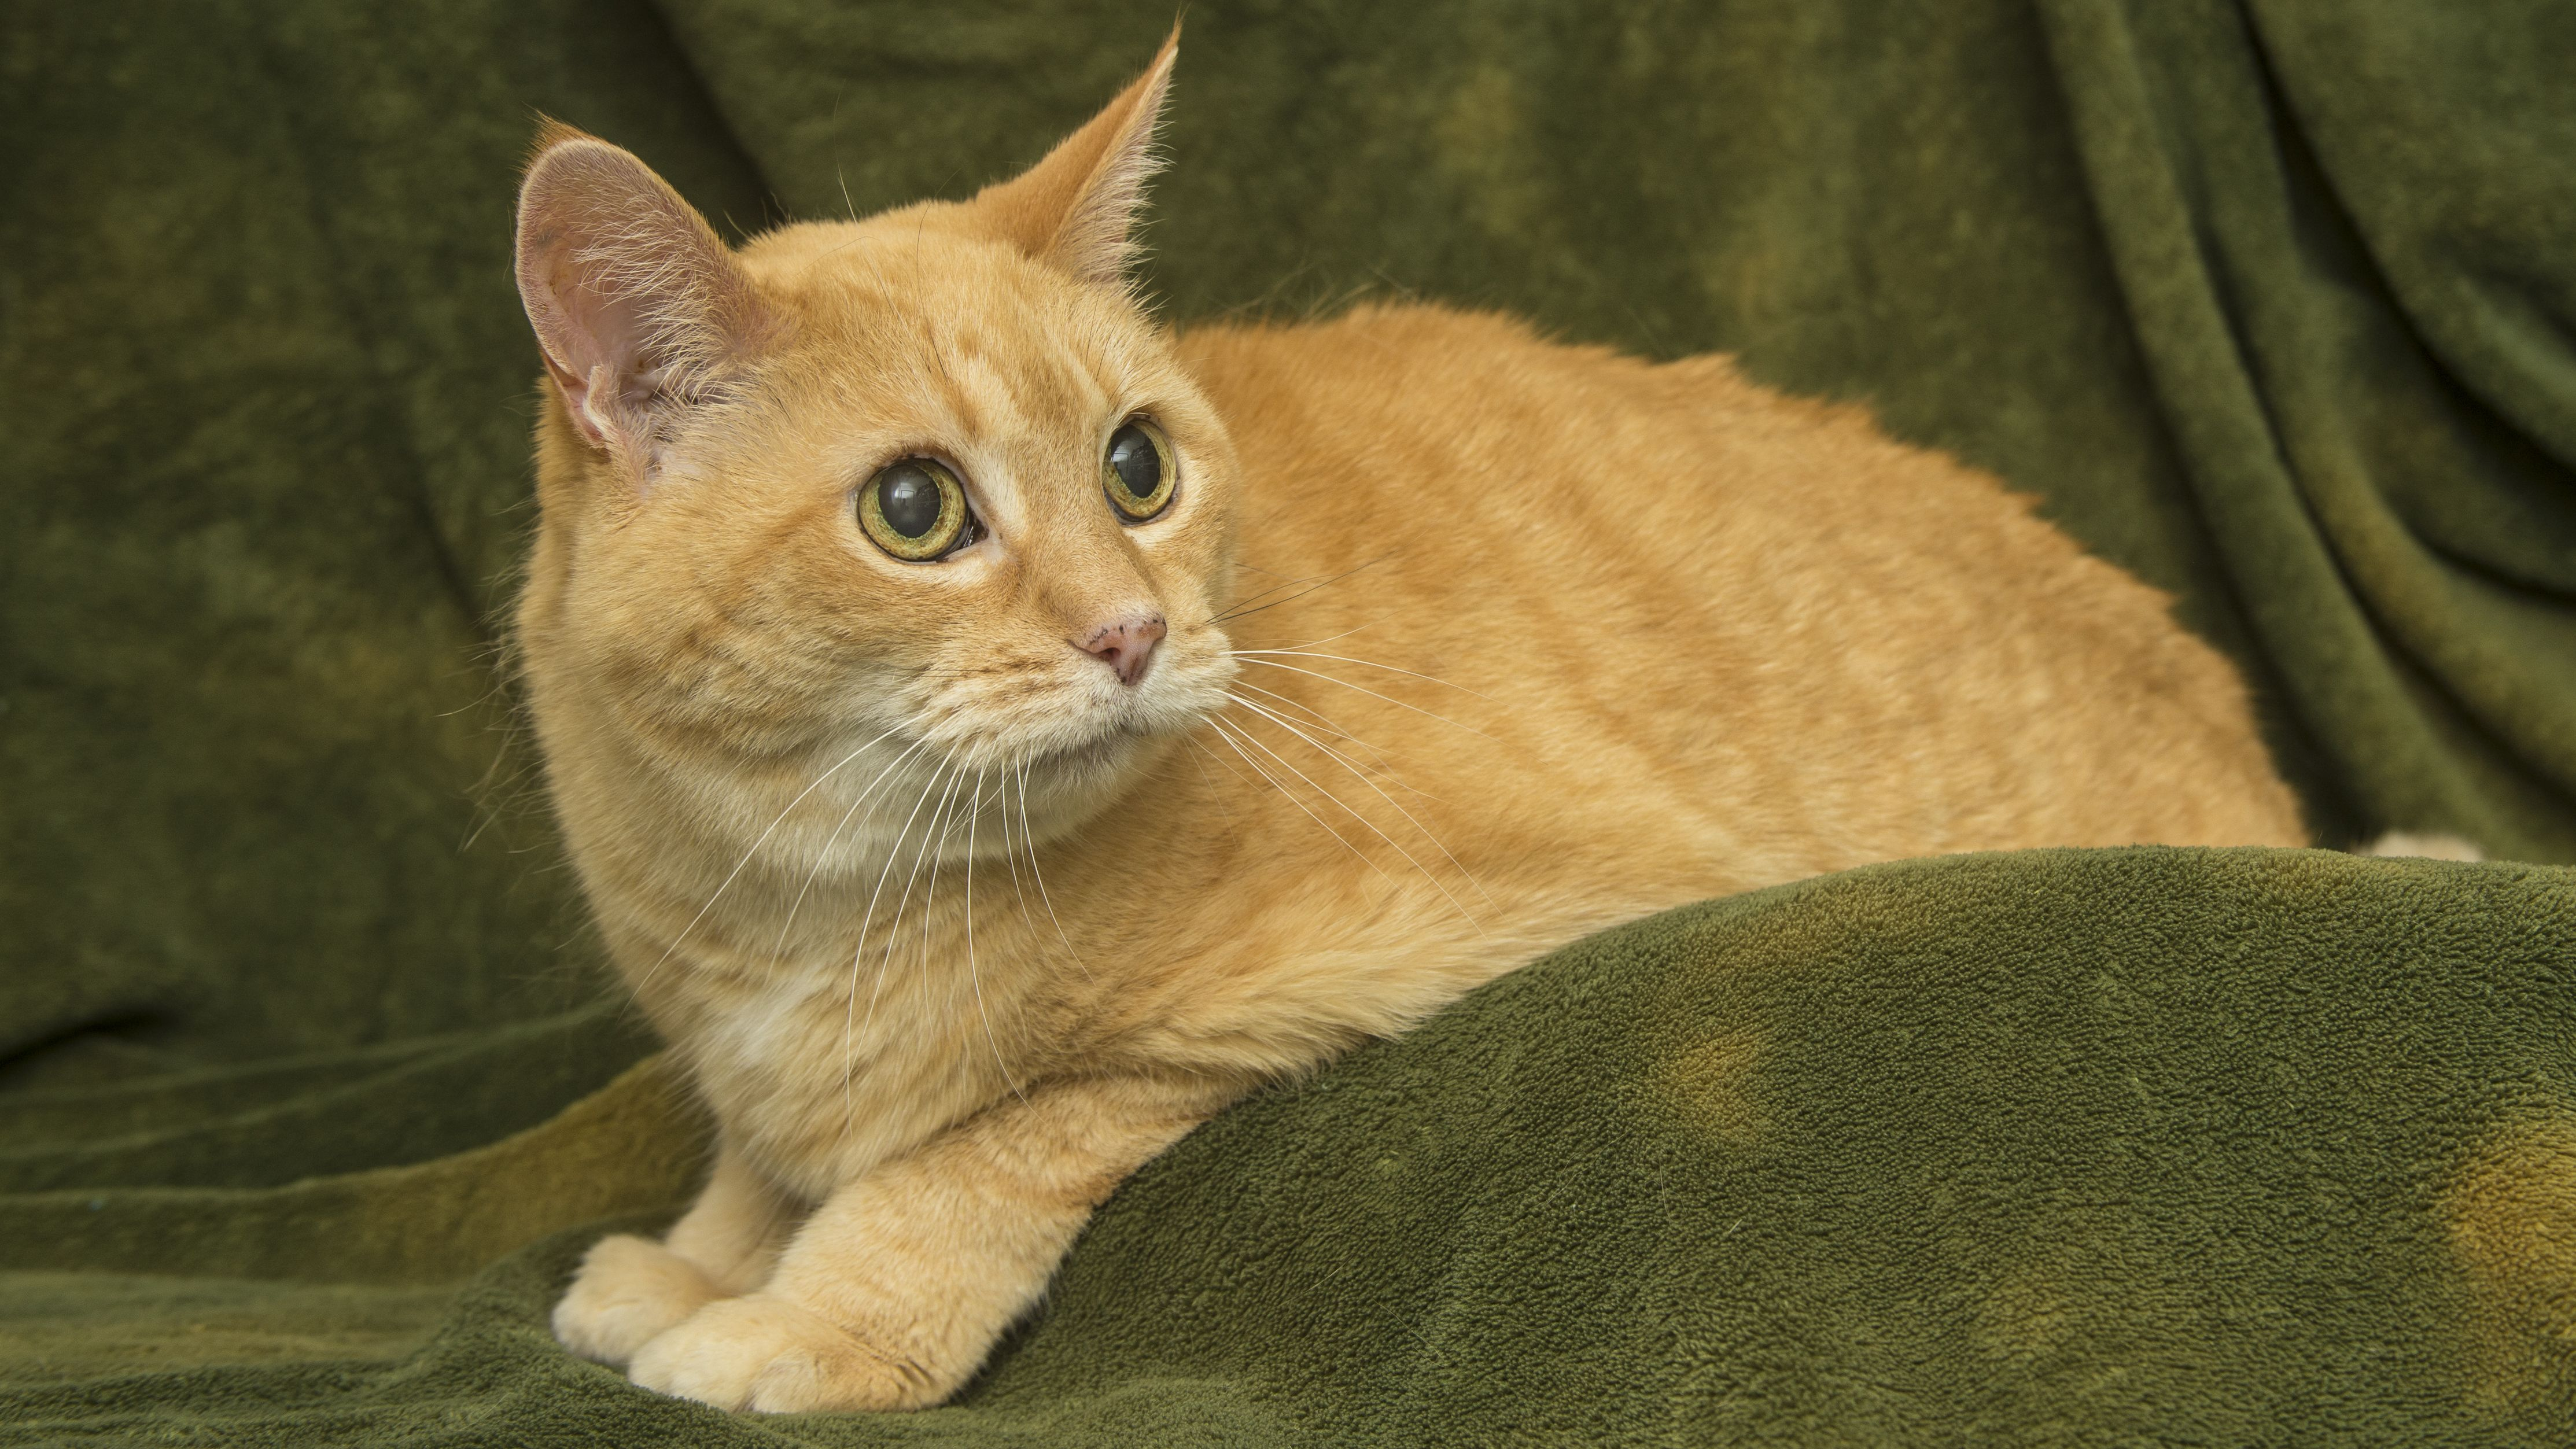 Peaches (With images) Cats, Animals, Hyperthyroidism